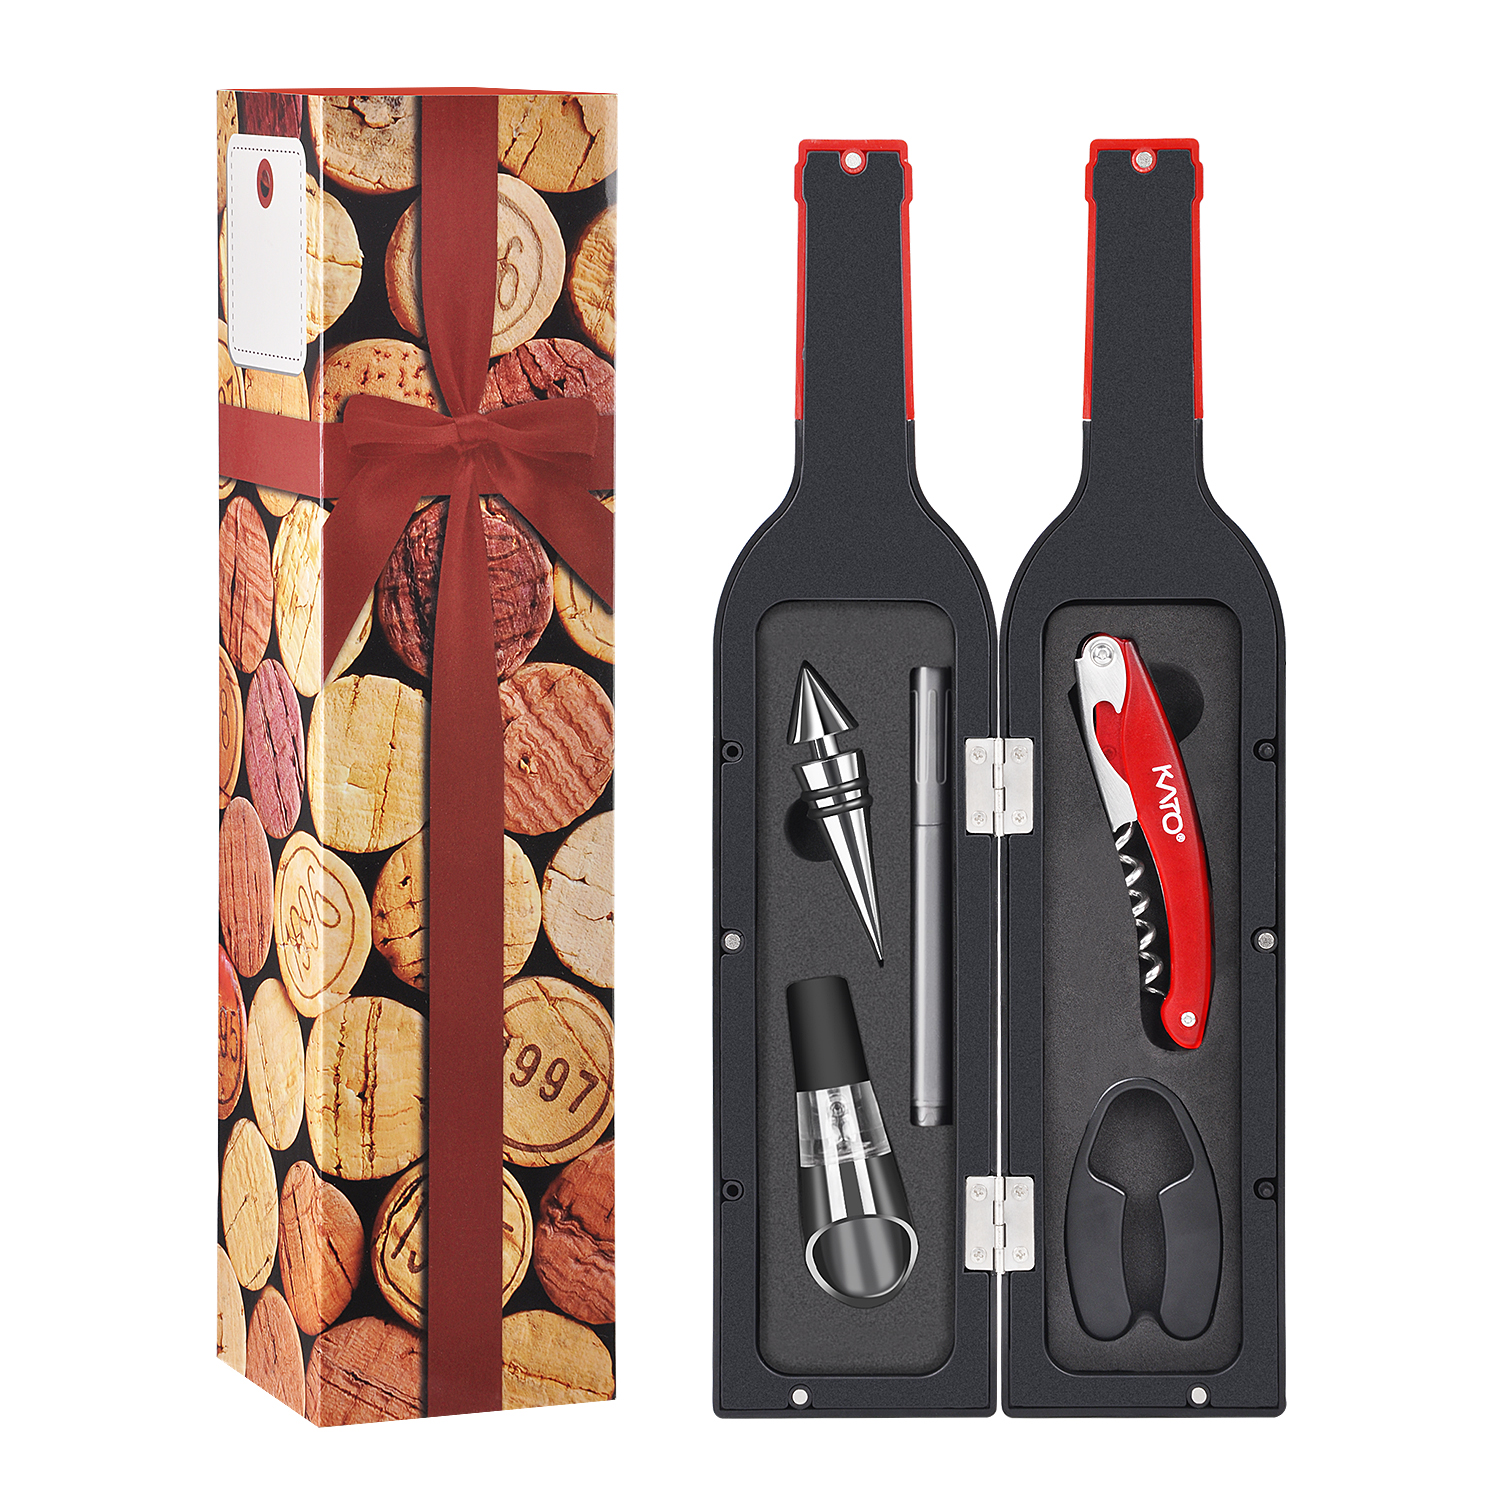 Deluxe Wine Opener Gift Set- Wine Bottle Accessory Kit, Corkscrew Opener, Wine Stopper, Aerator Pourer, Foil Cutter, Glass Paint Marker and Reusable Drink Stickers by Kato, Best Gift for Wine Lover